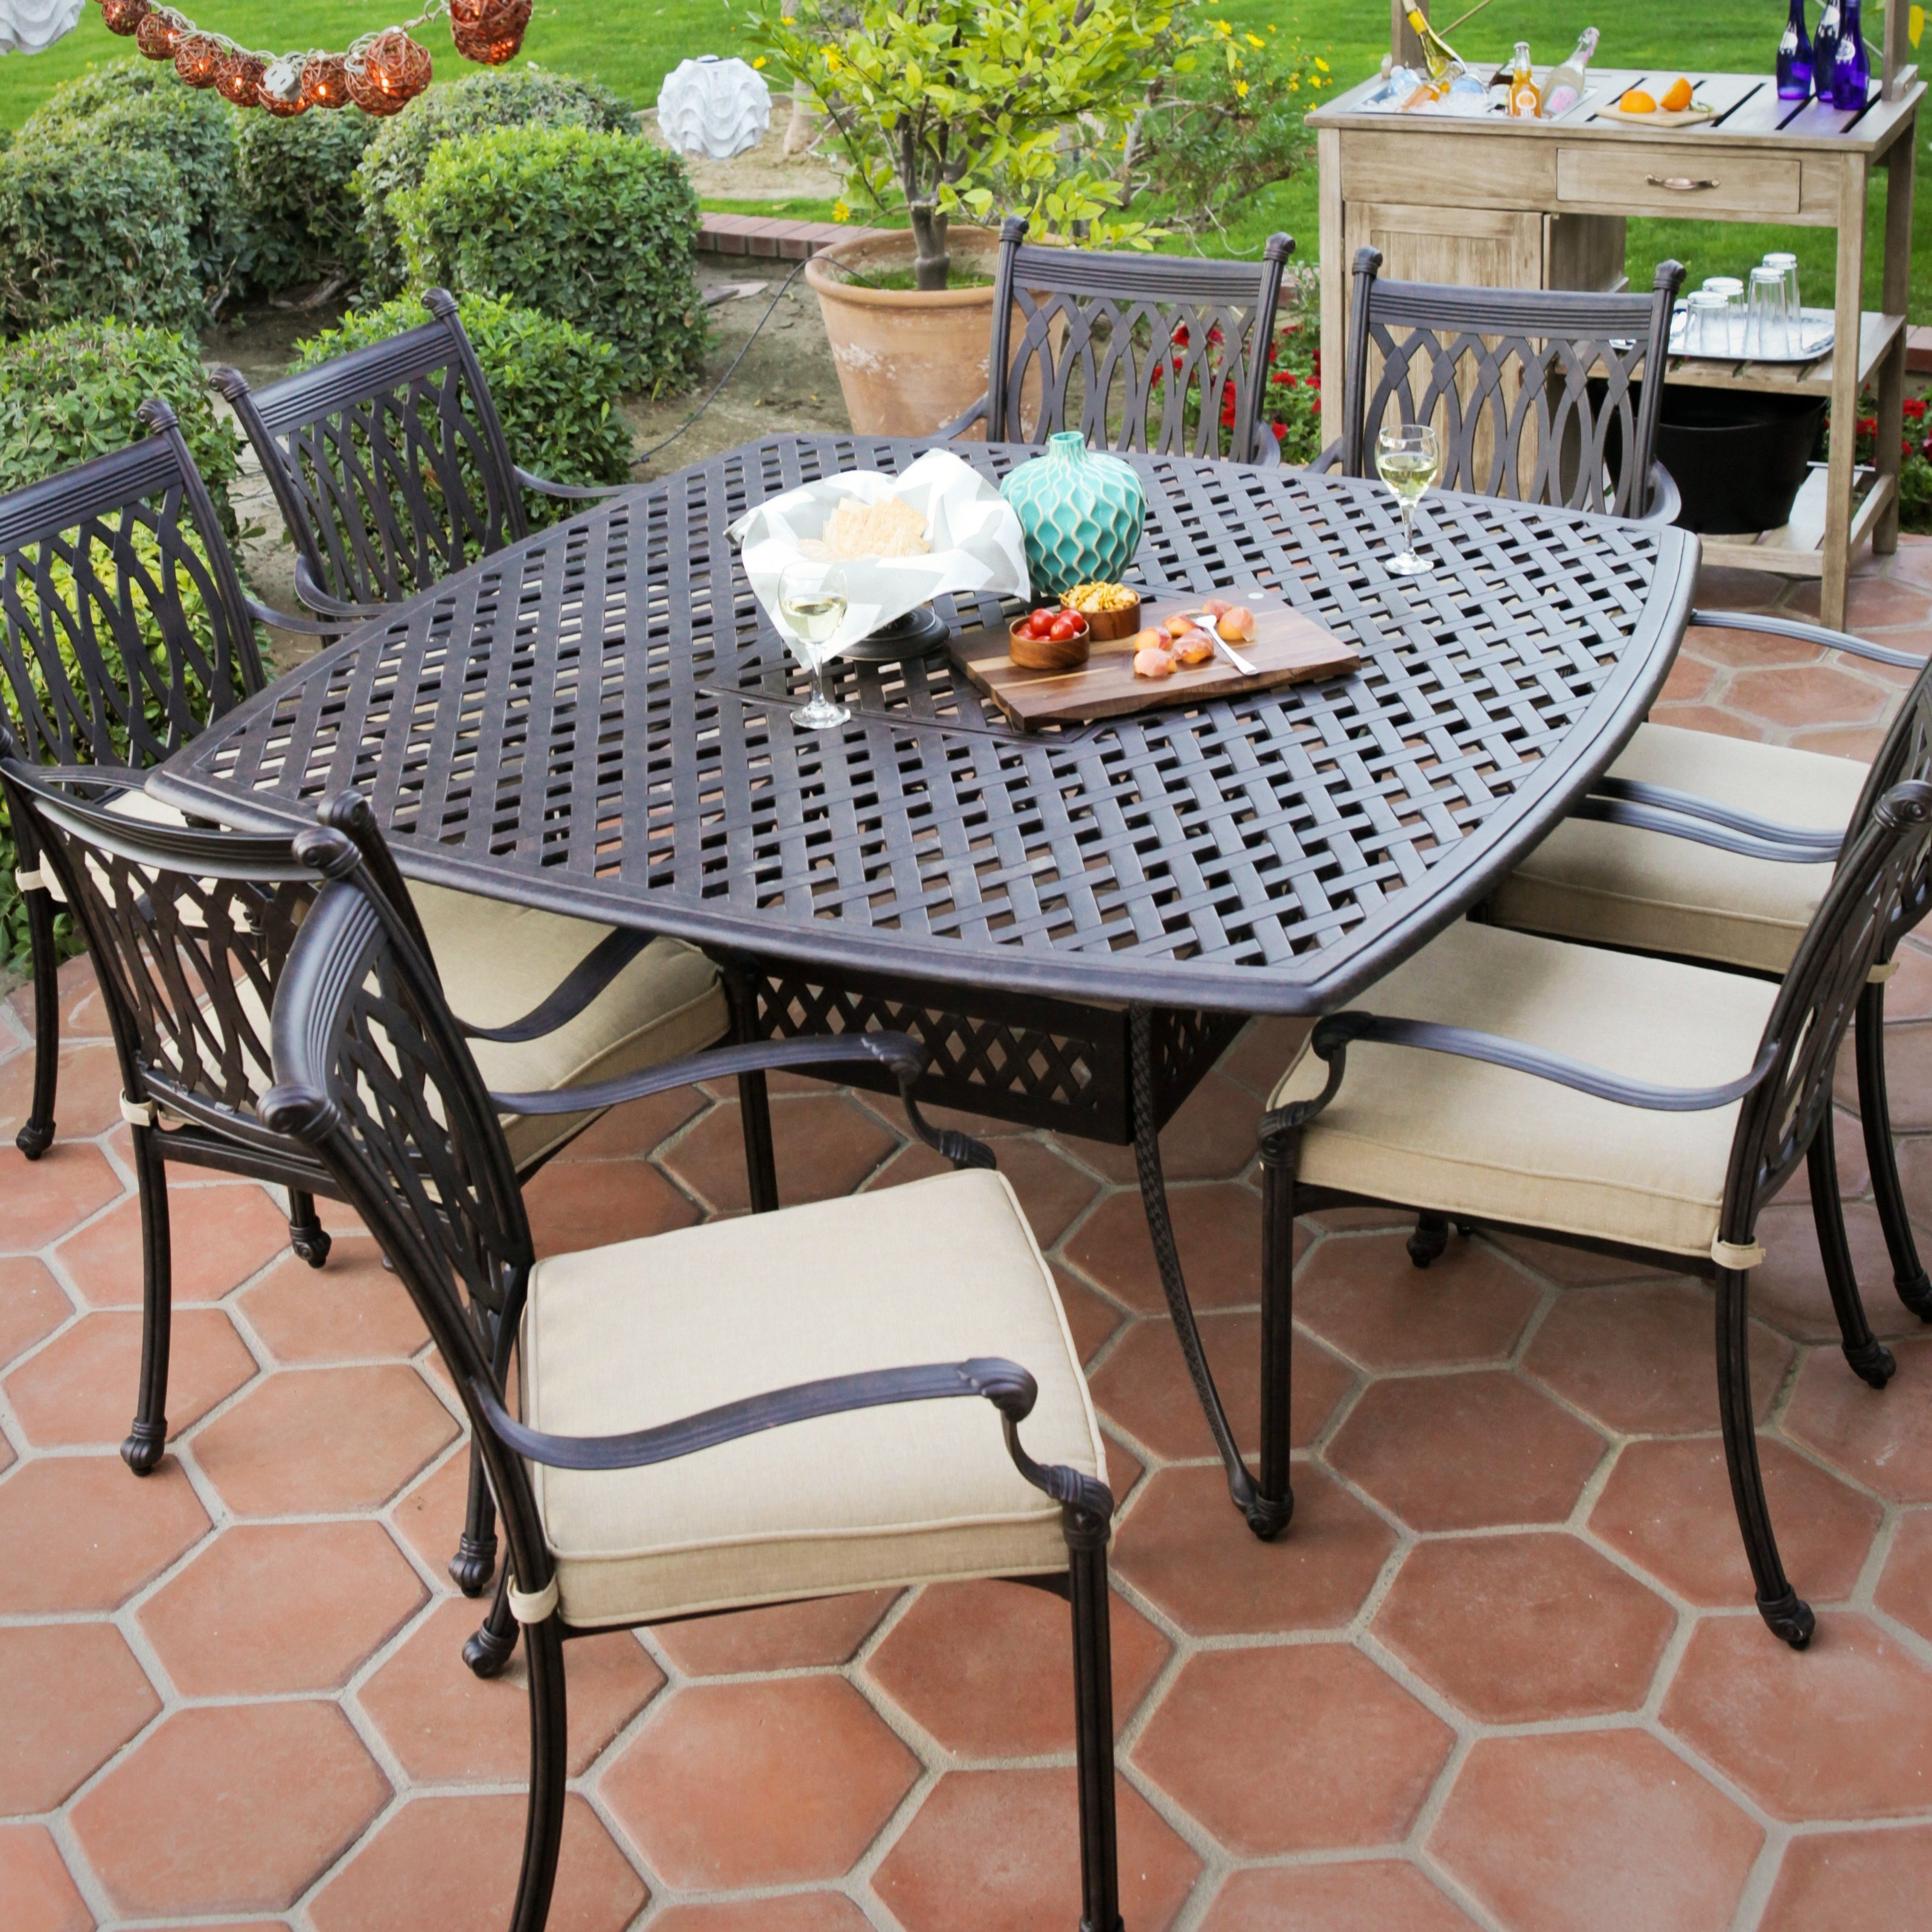 Modern Patio Furniture Clearance Better Best Outdoor Dining Sets On With Regard To 2017 Patio Conversation Sets With Dining Table (View 2 of 15)